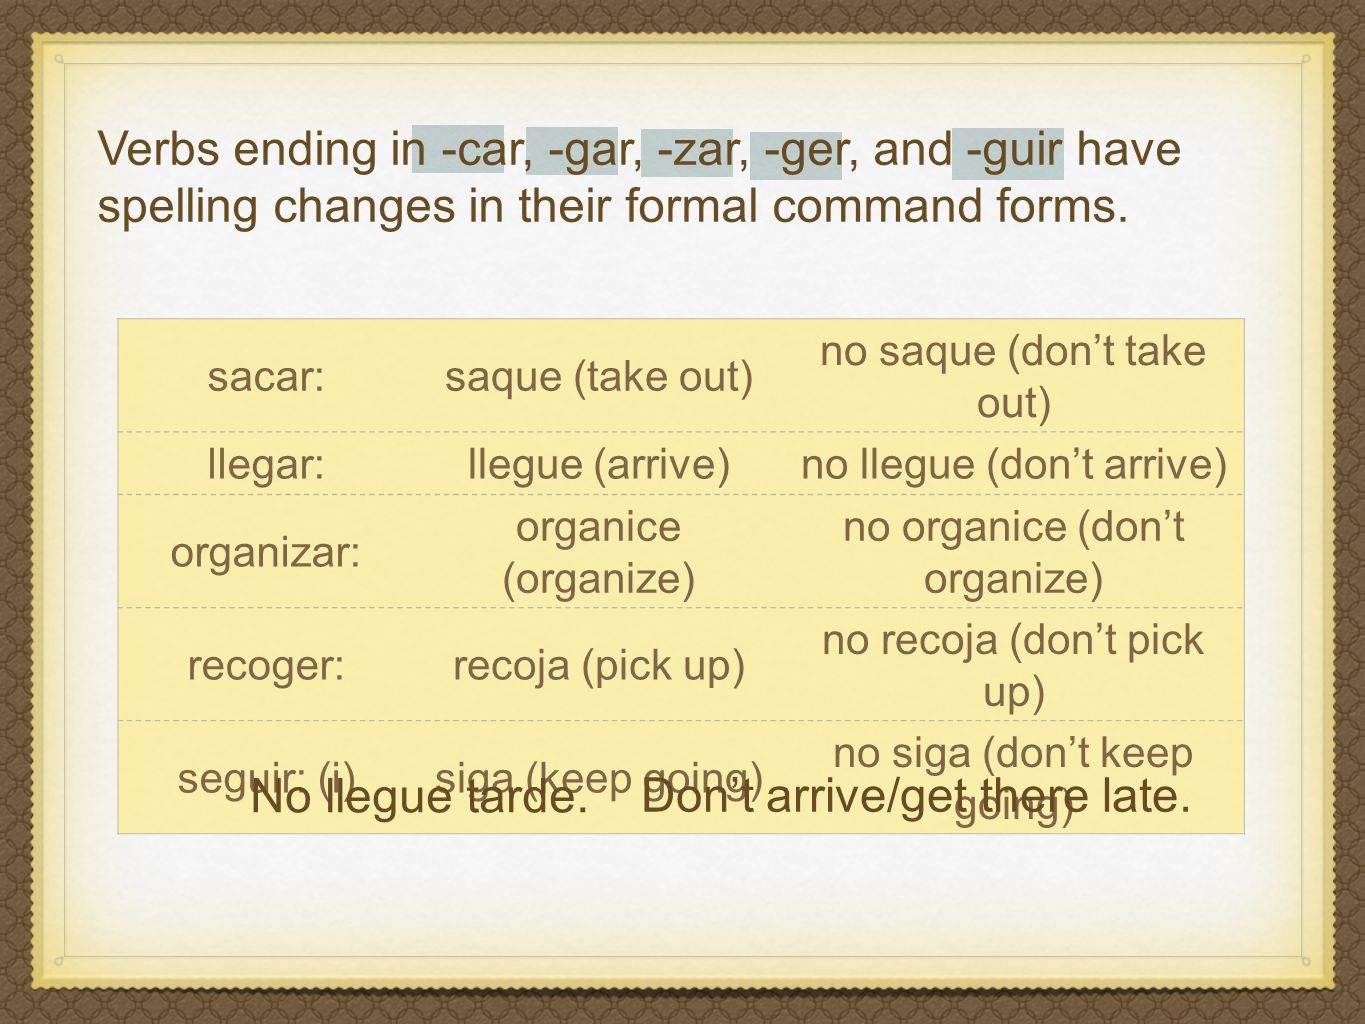 Verbs ending in -car, -gar, -zar, -ger, and -guir have spelling changes in their formal command forms. sacar:saque (take out) no saque (dont take out)